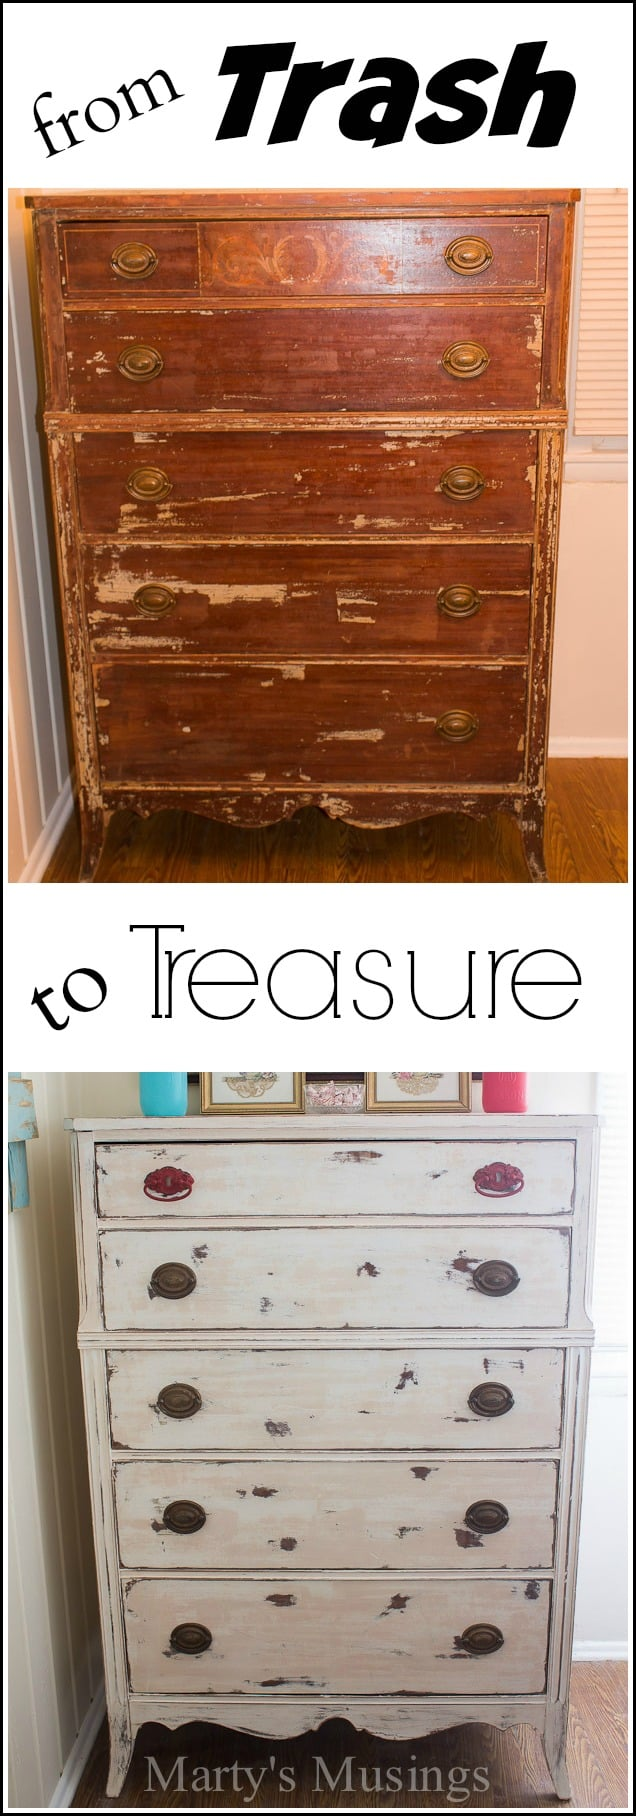 This ugly piece of furniture was found on a curb before it was transformed into a gorgeous chalk painted dresser with paint and a little bit of work!